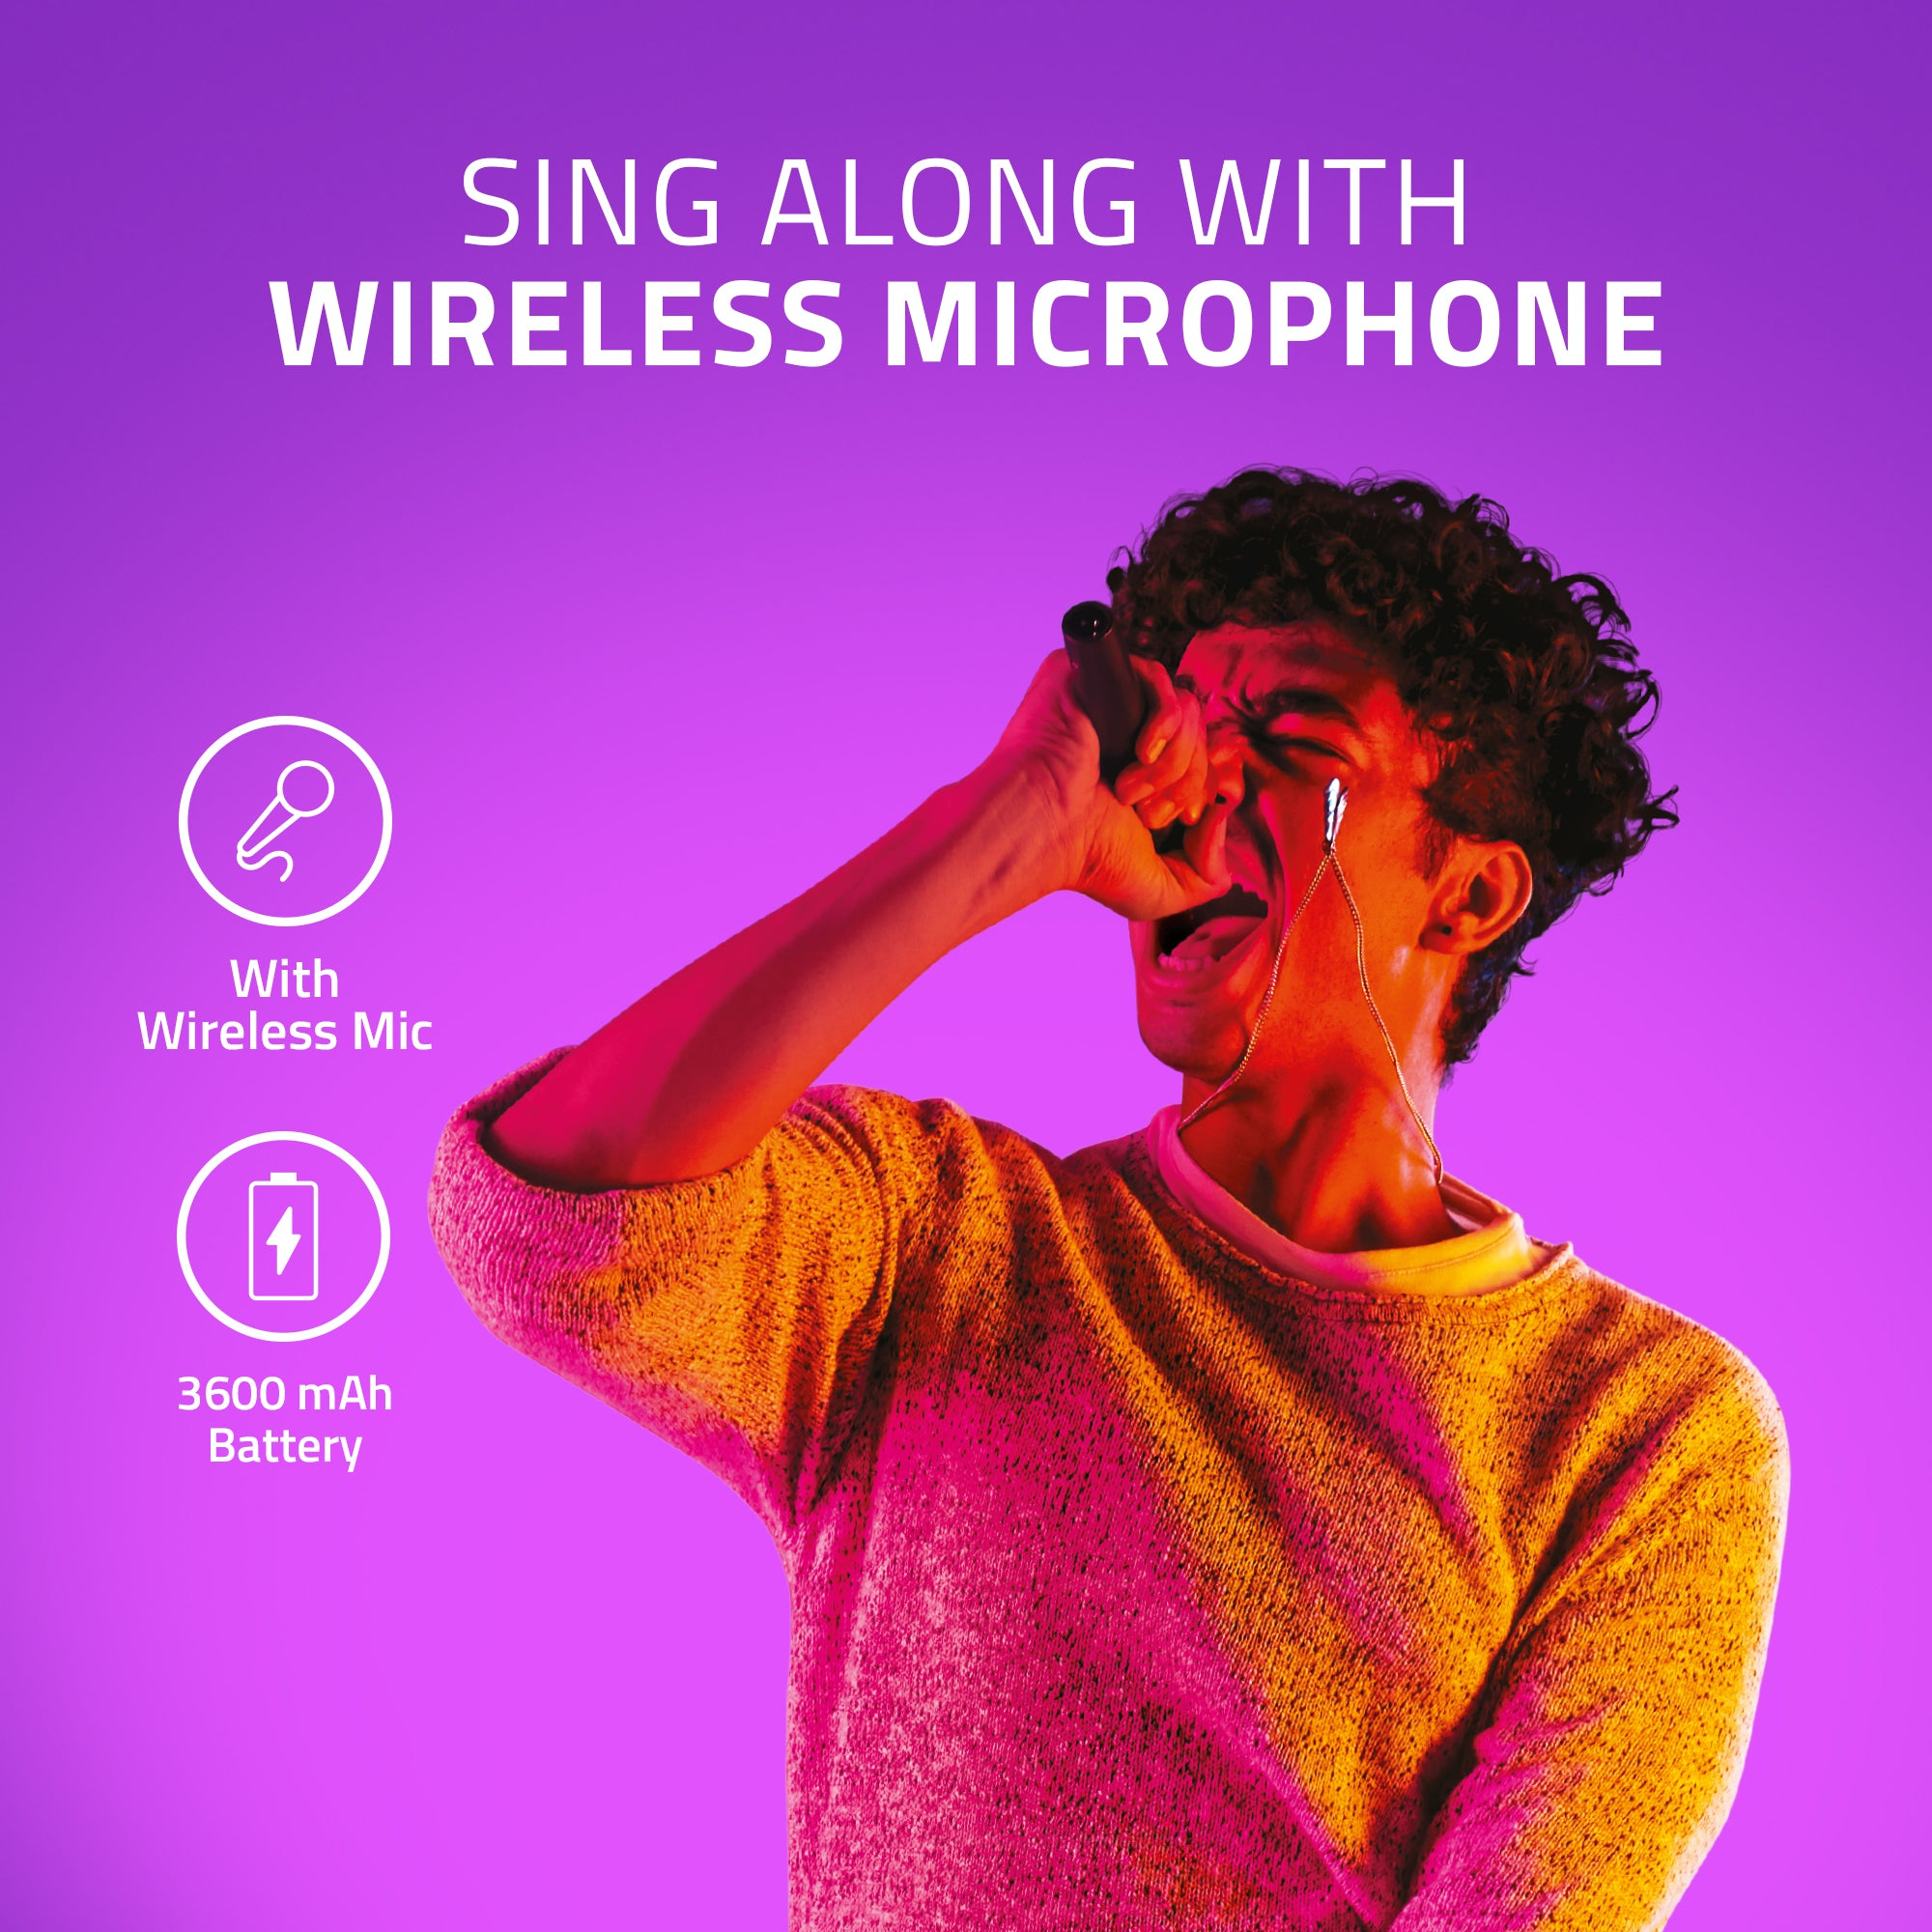 Sing along with Wireless Microphone with Artis MS304 Bluetooth Party Speaker